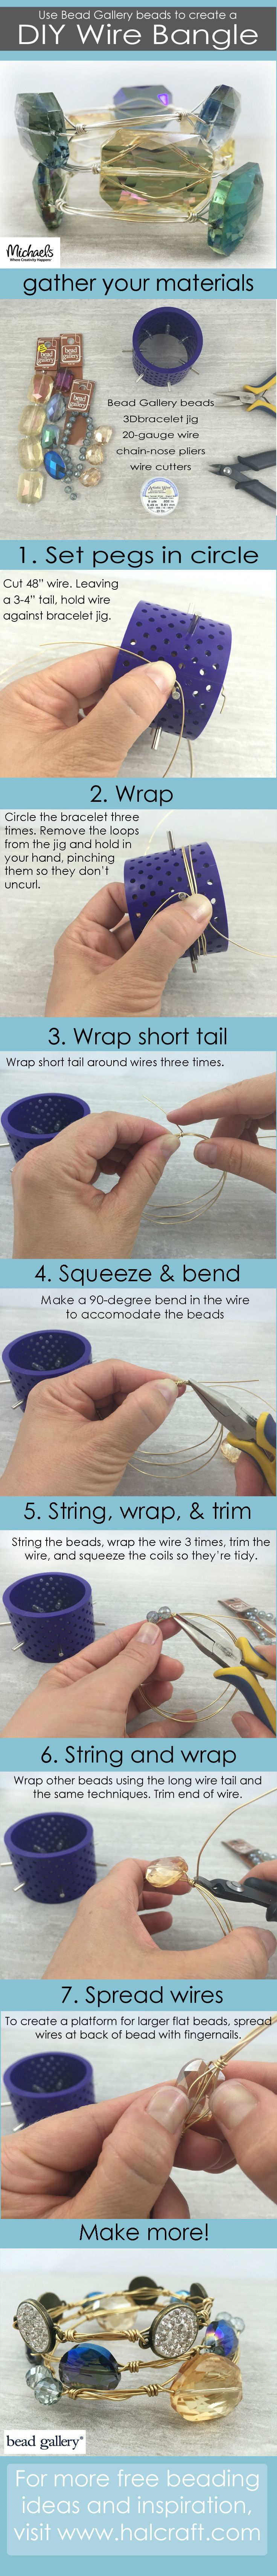 DIY wire wrapped bangles tutorial using Bead Gallery beads and ...